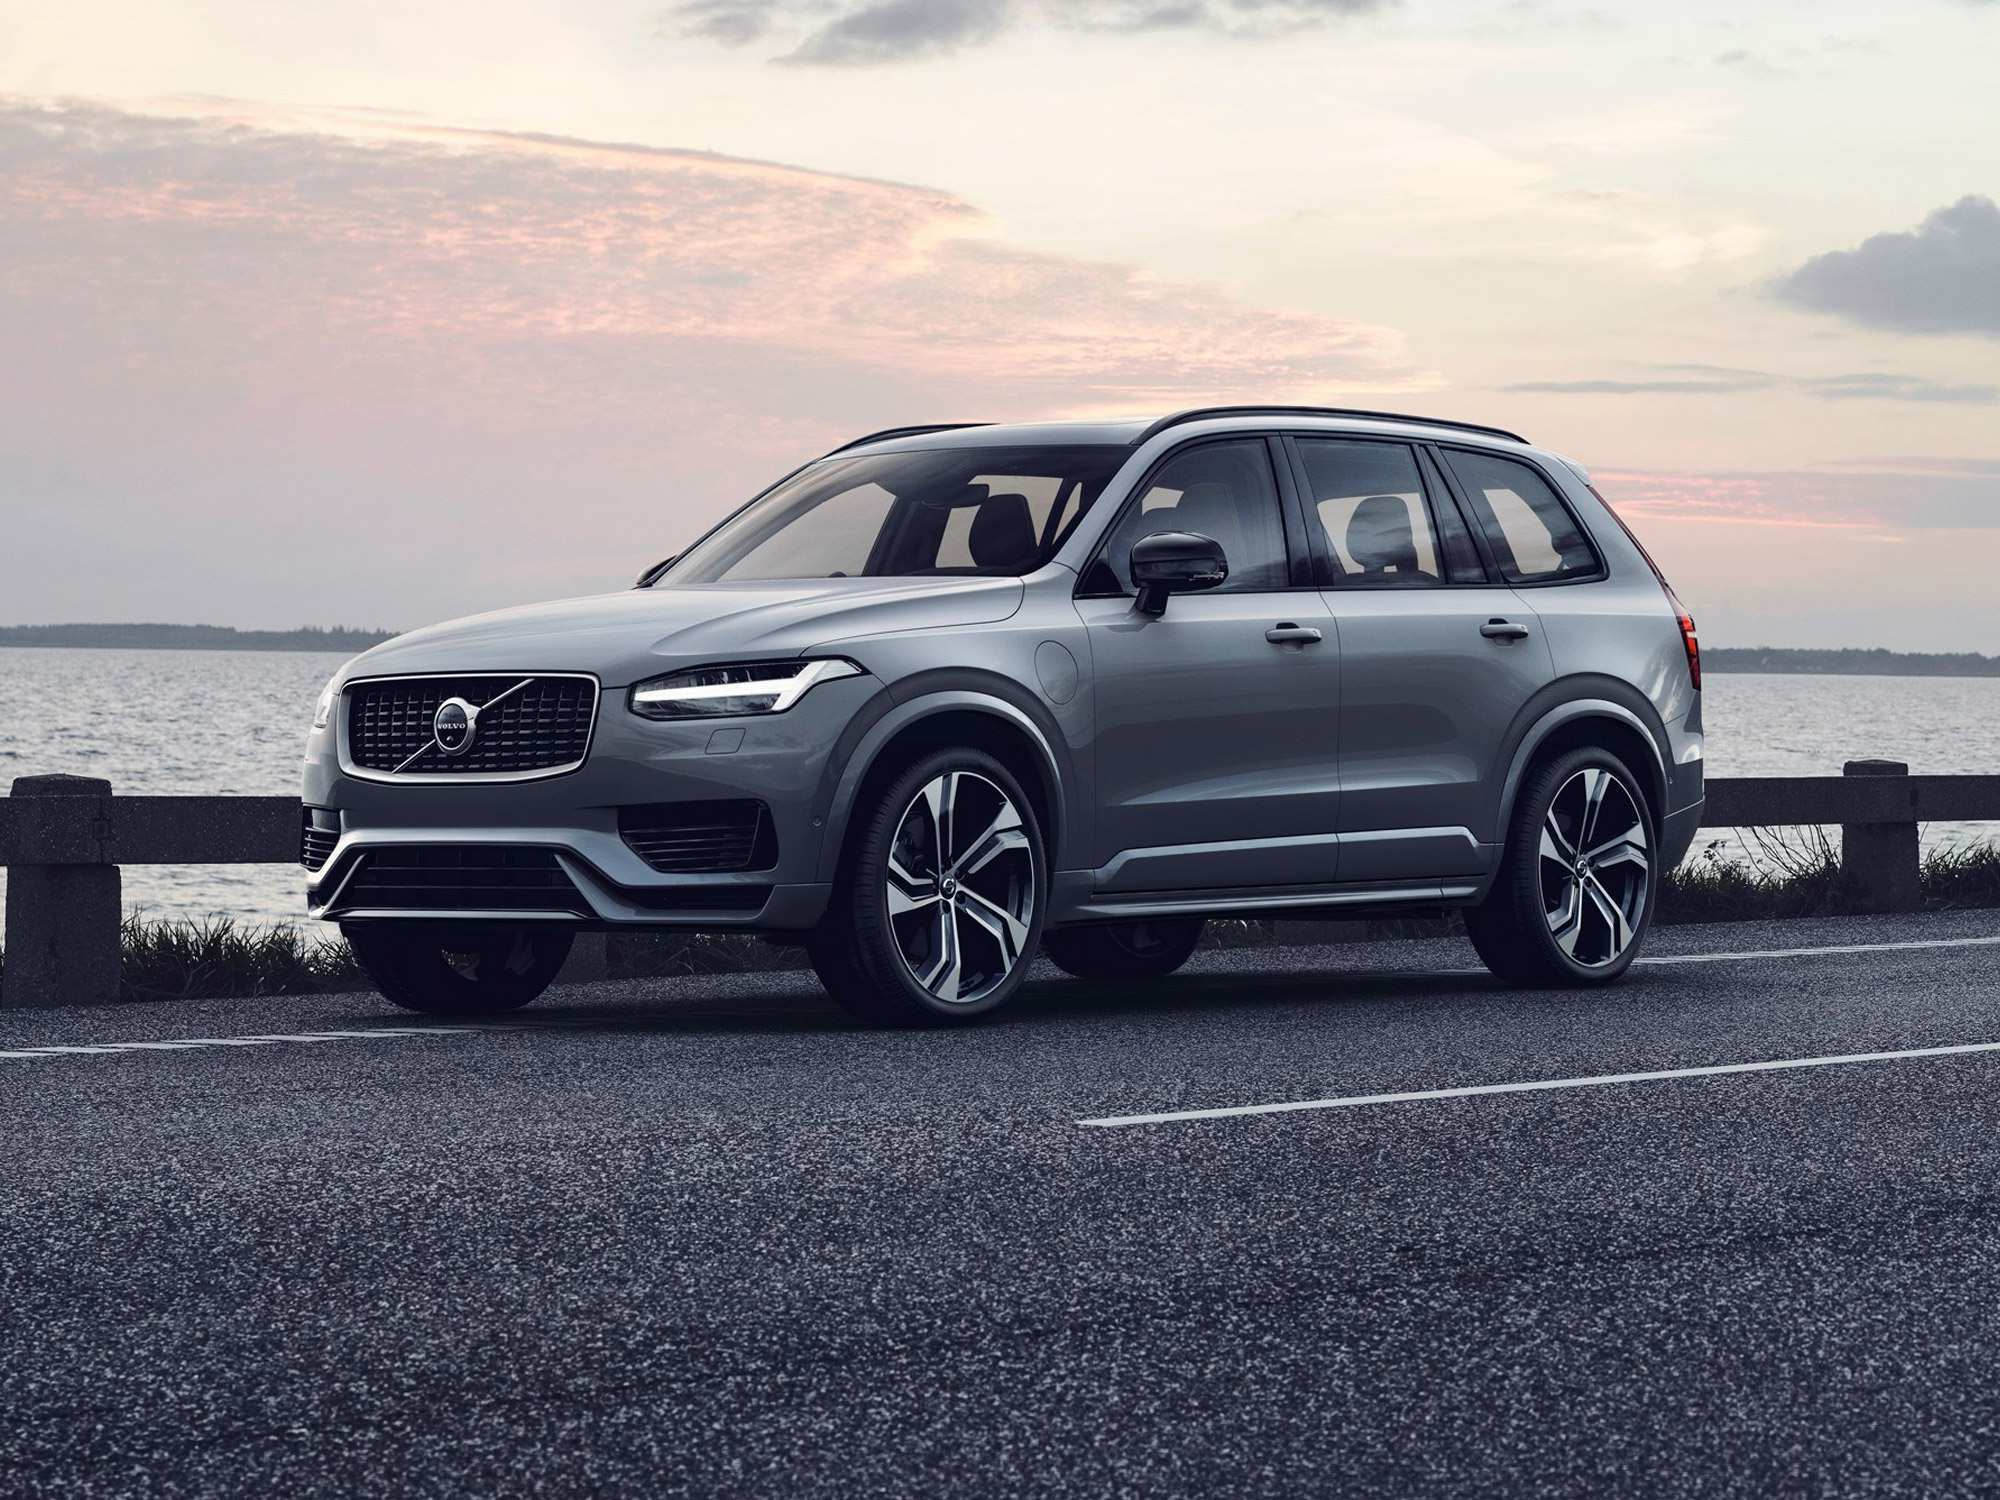 14 All New Volvo Laddhybrid 2020 Configurations